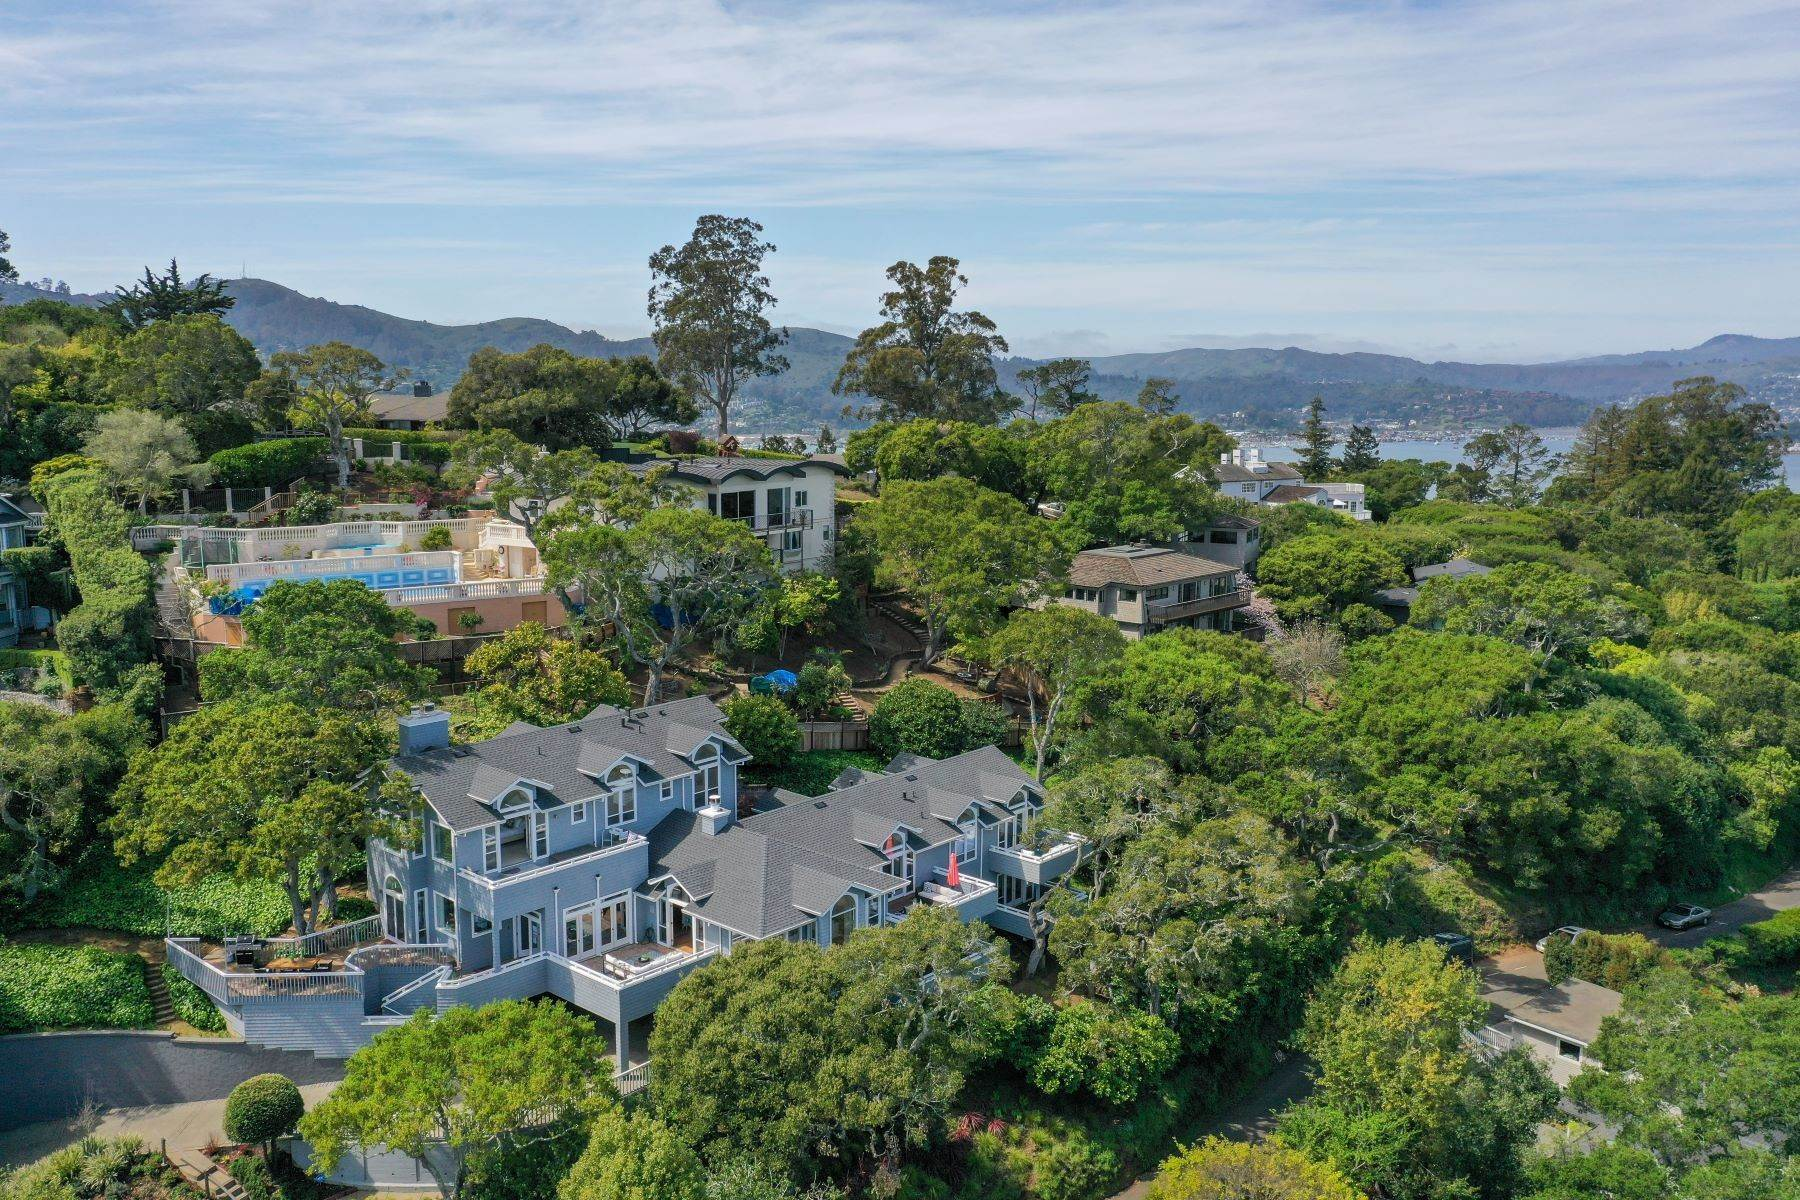 Property for Sale at Inviting Belvedere Home 75 Madrona Avenue Belvedere, California 94920 United States